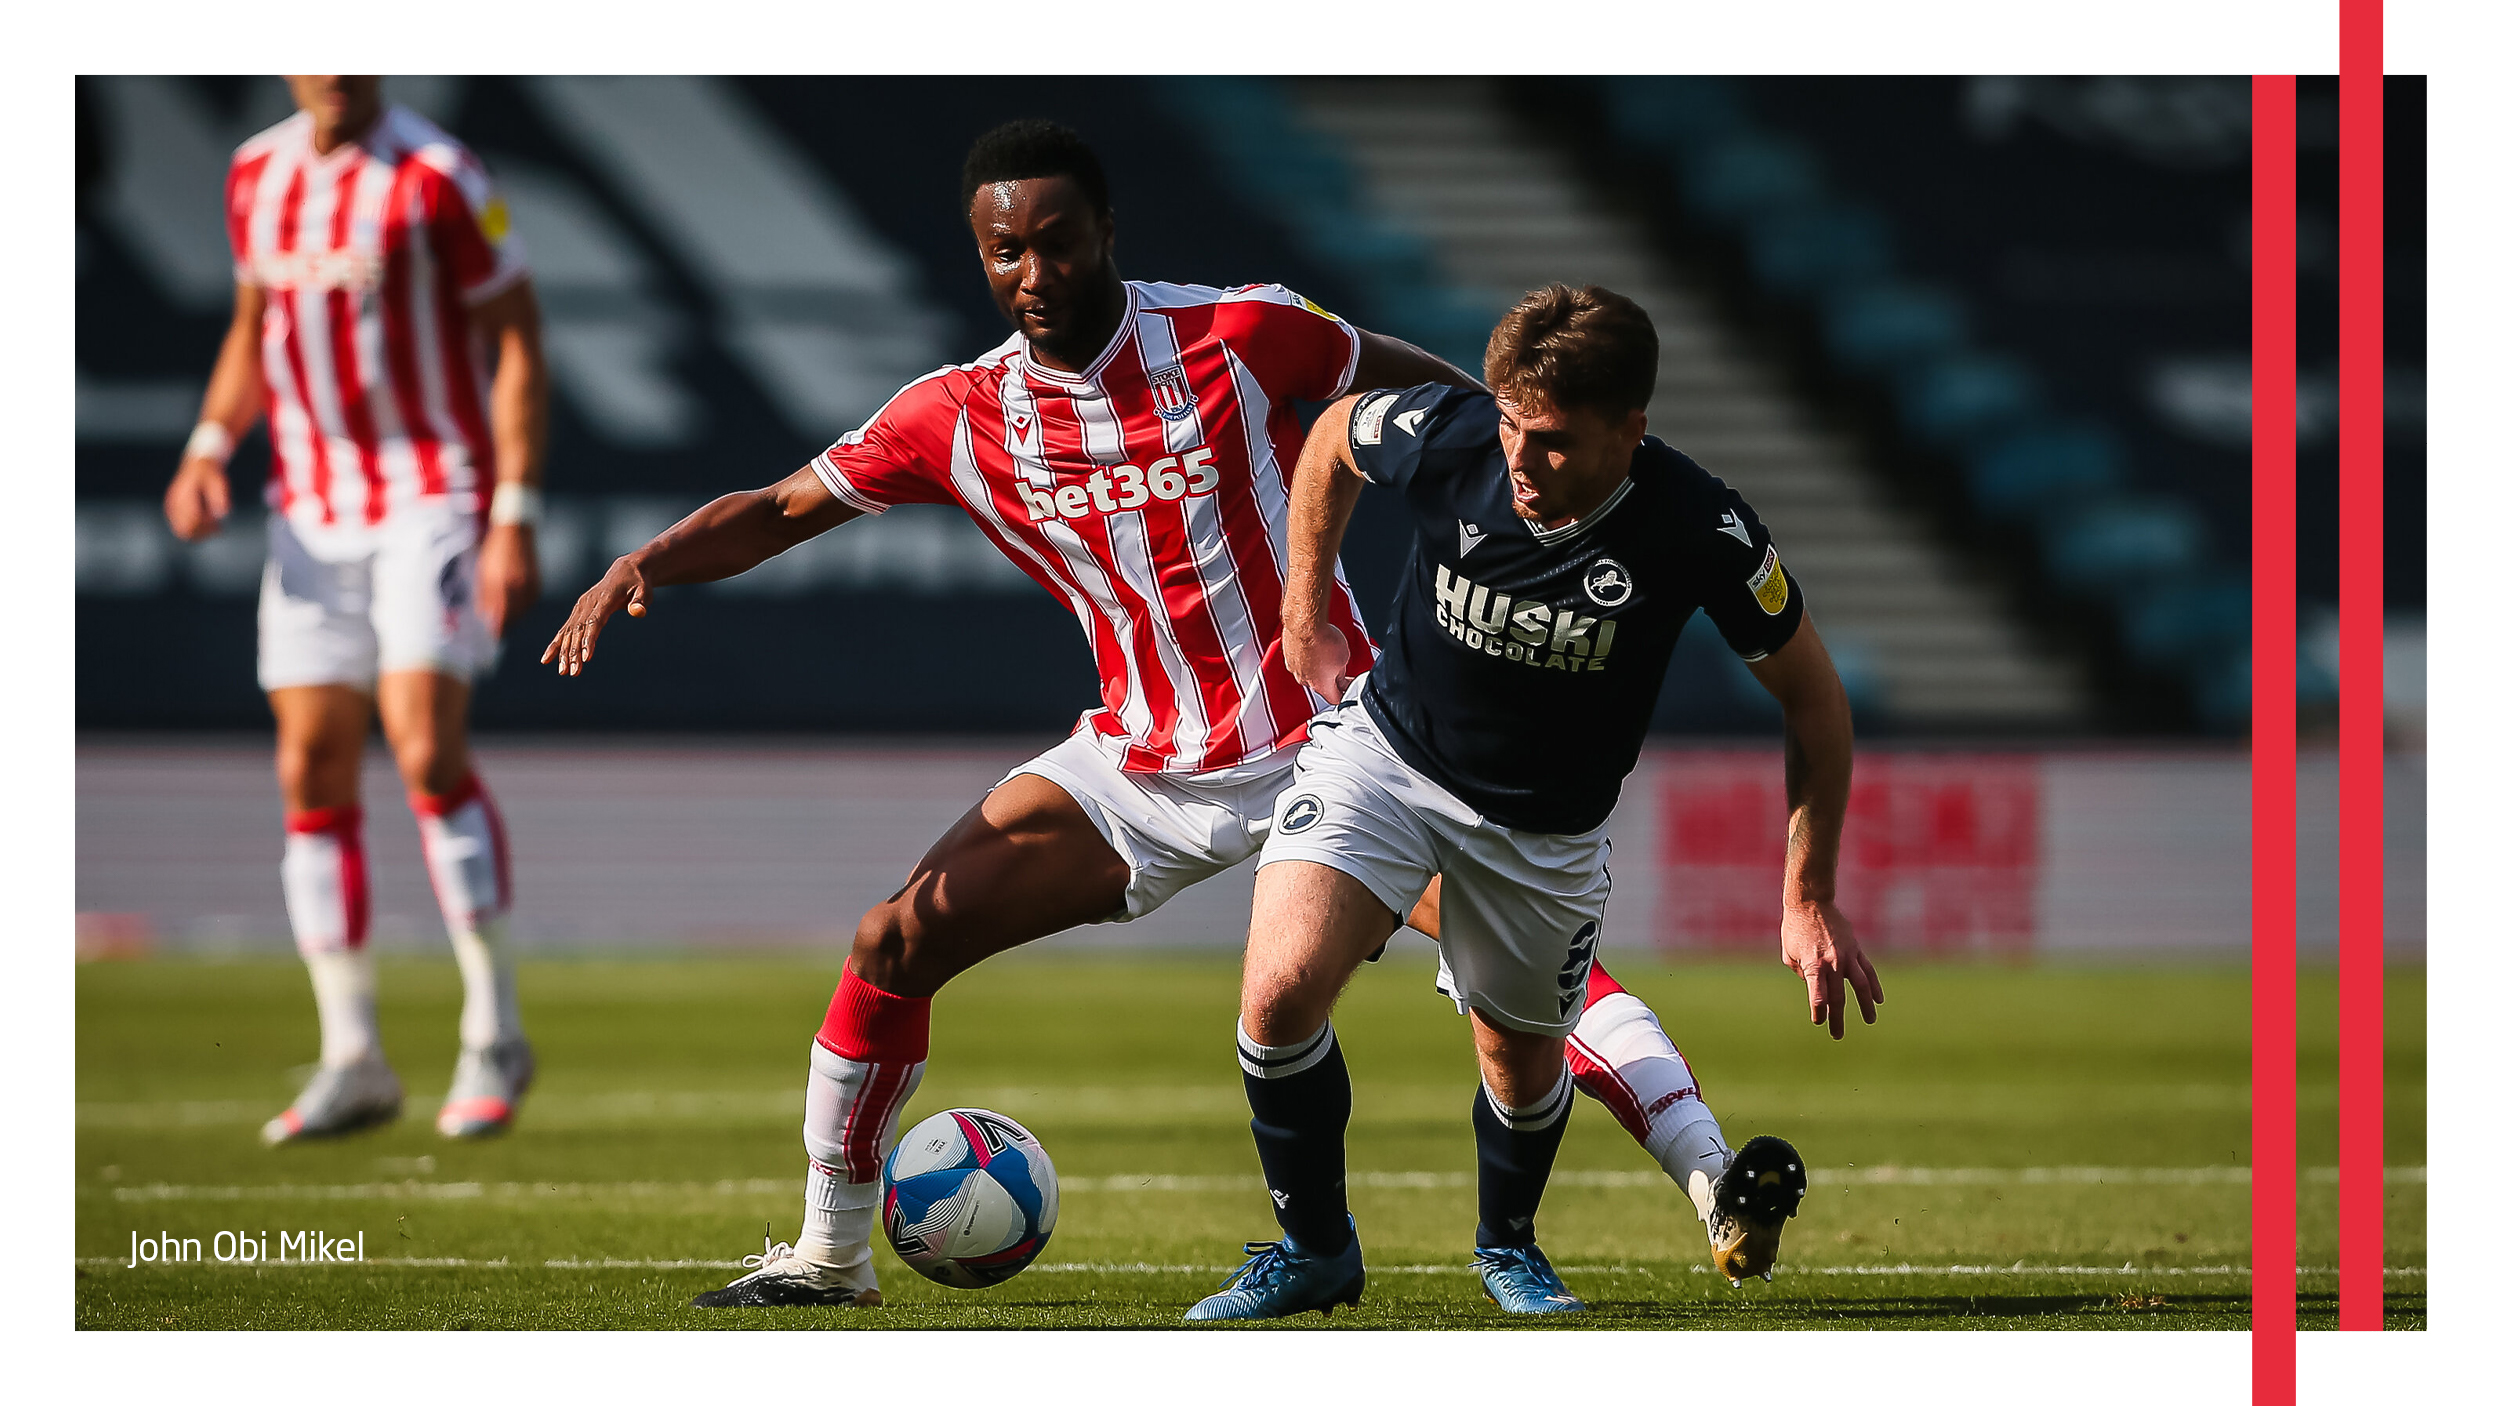 O'Neil Talks Up Mikel After Impressive League Debut For Stoke City